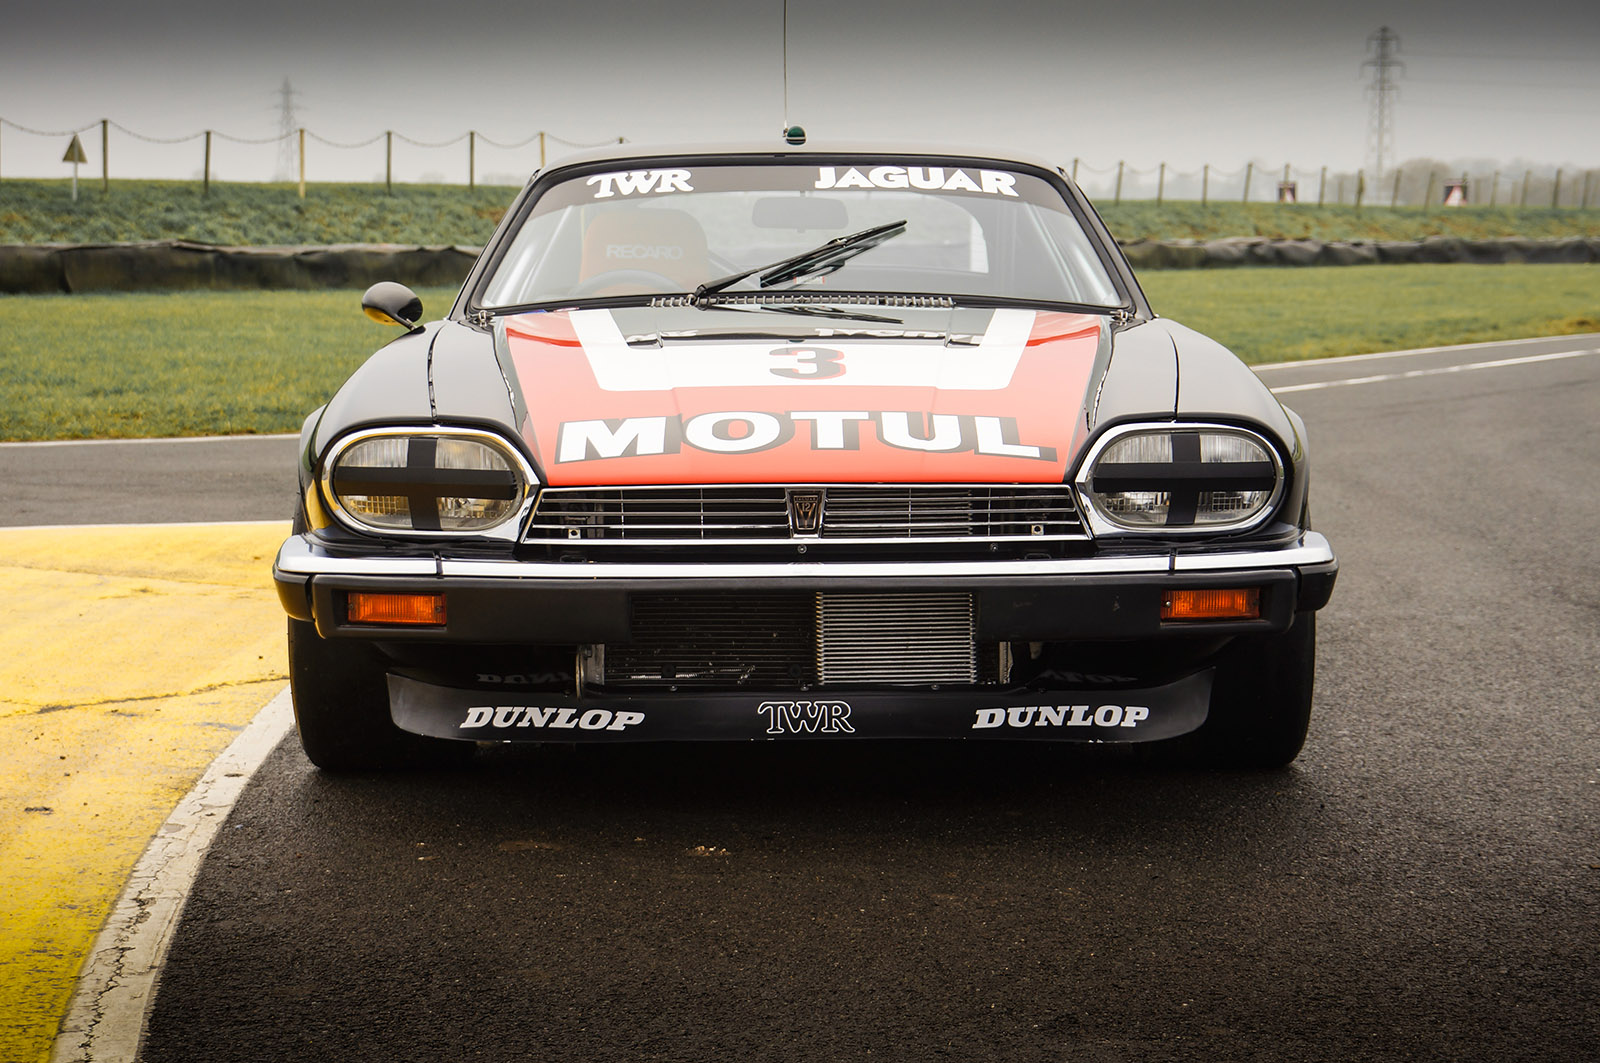 jaguar_twr_xjs_walkinshaw_wilkinson_sayer_selection_front.jpg